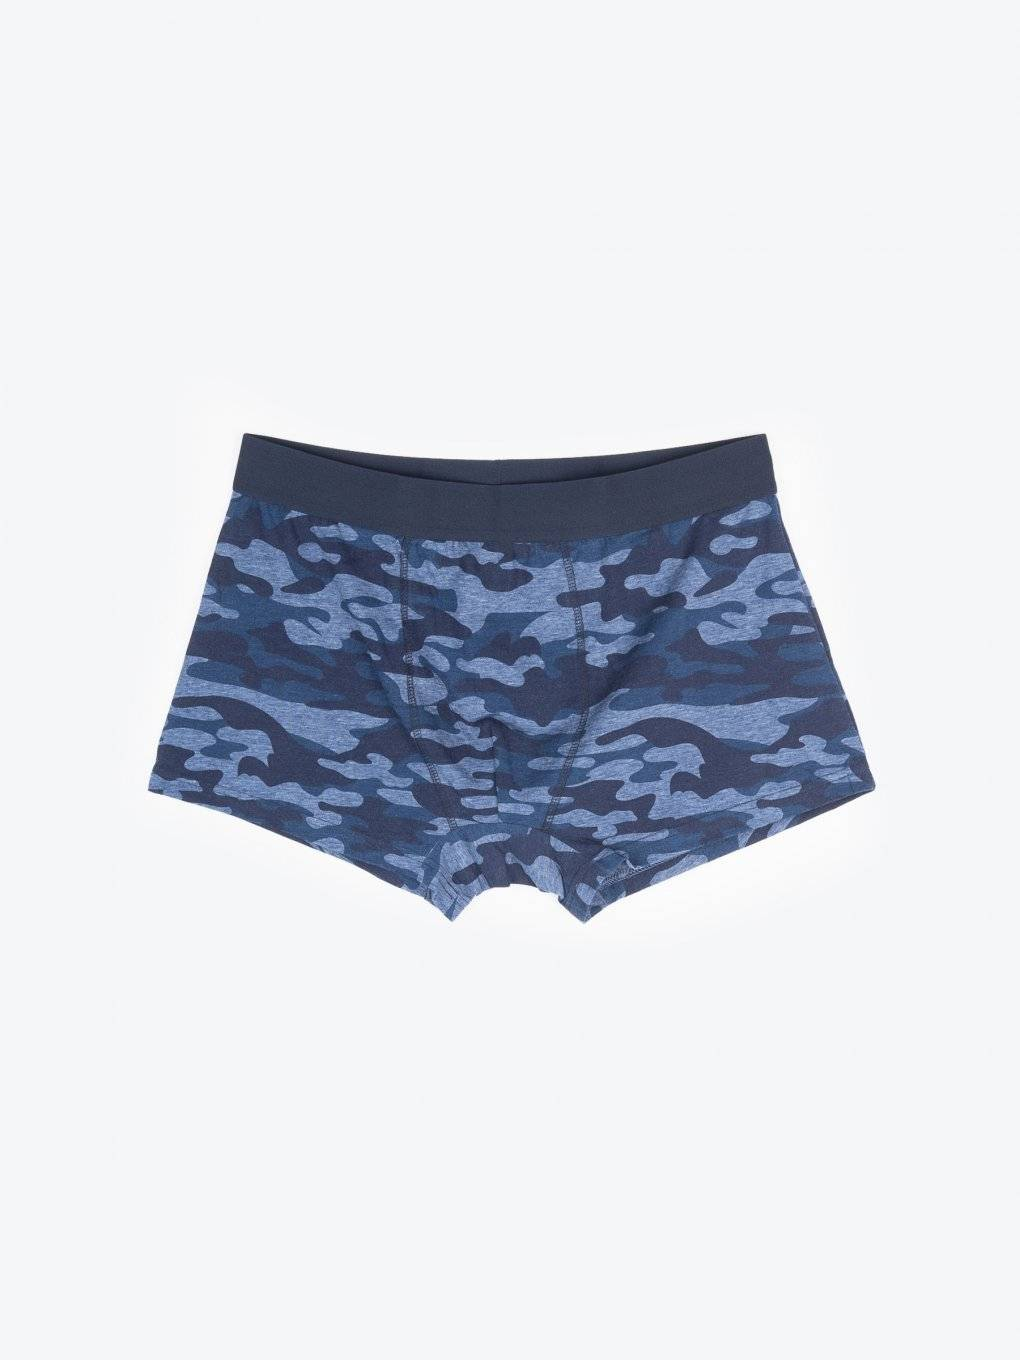 2-pack printed knit boxers